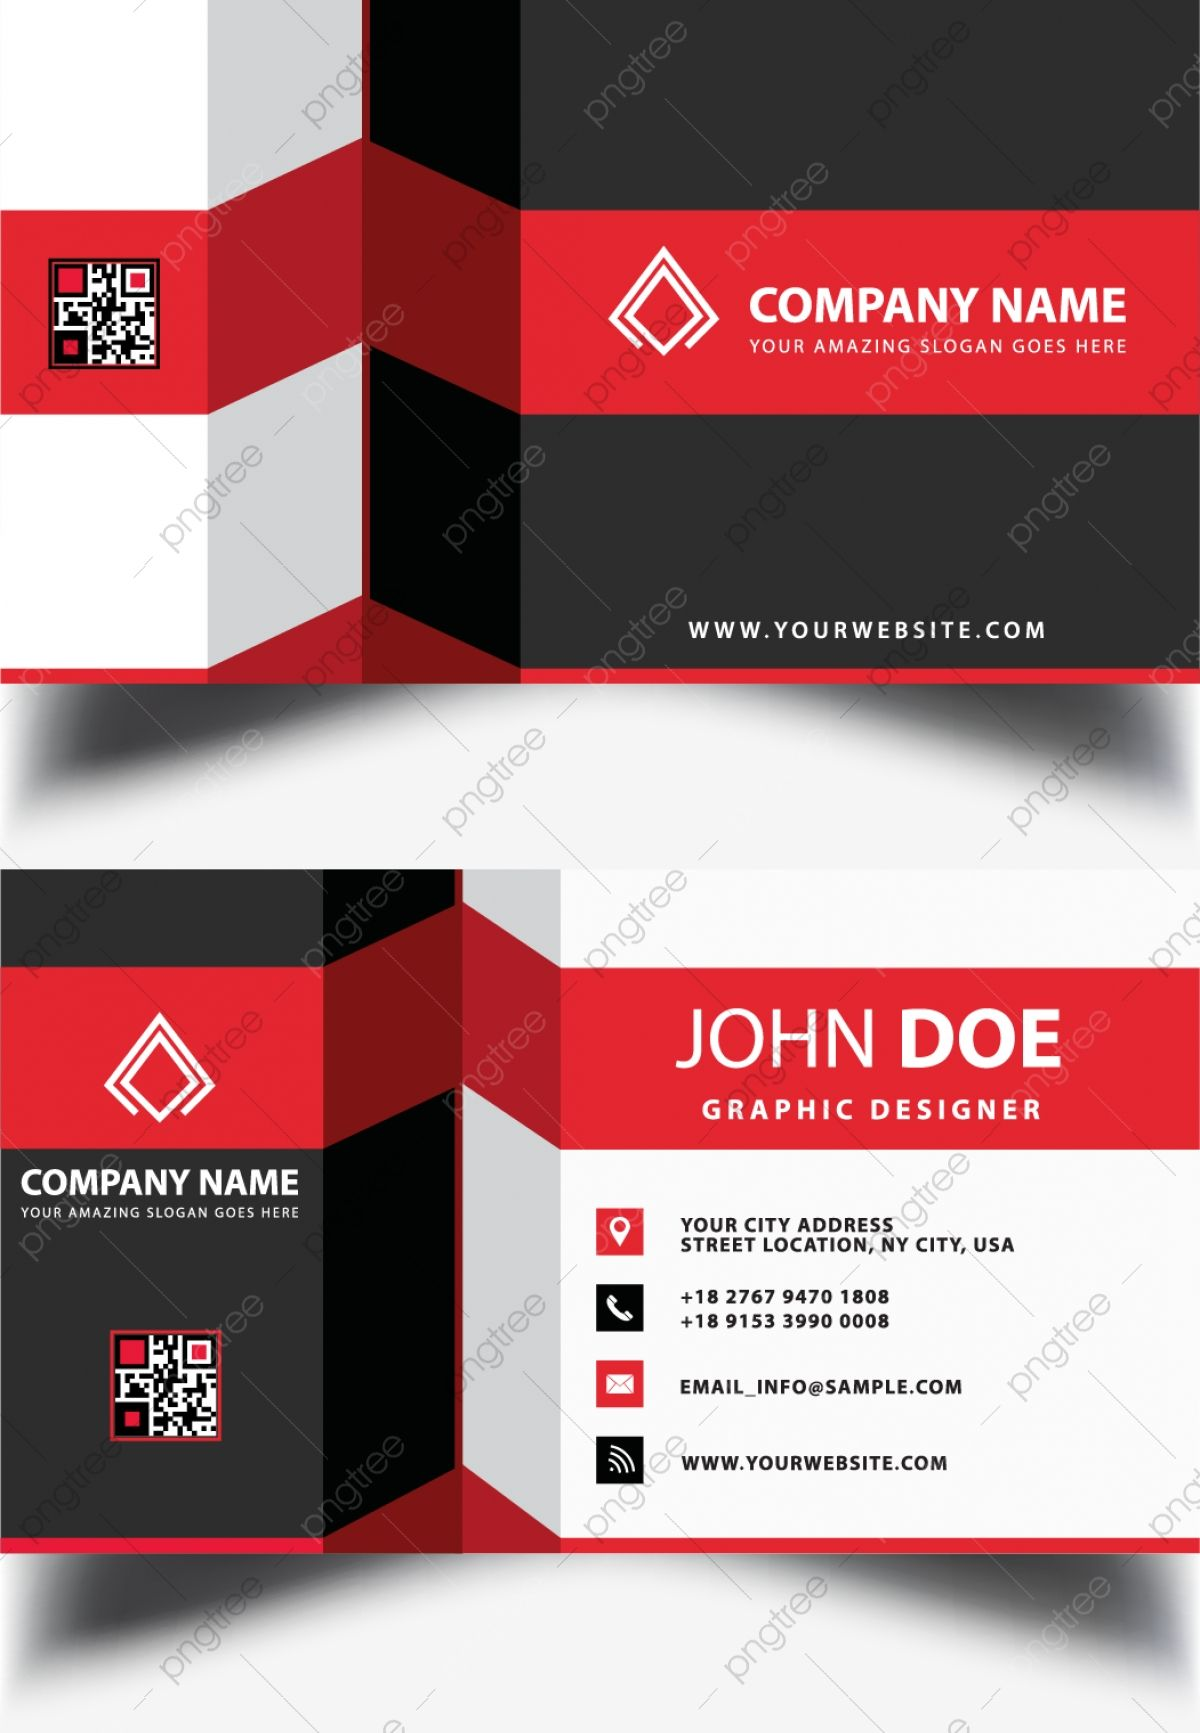 Download This Card Design Card Card Vector Design Vector Transparent Png Or Vector File For Free Pngtr Visiting Card Design Card Design Cool Business Cards